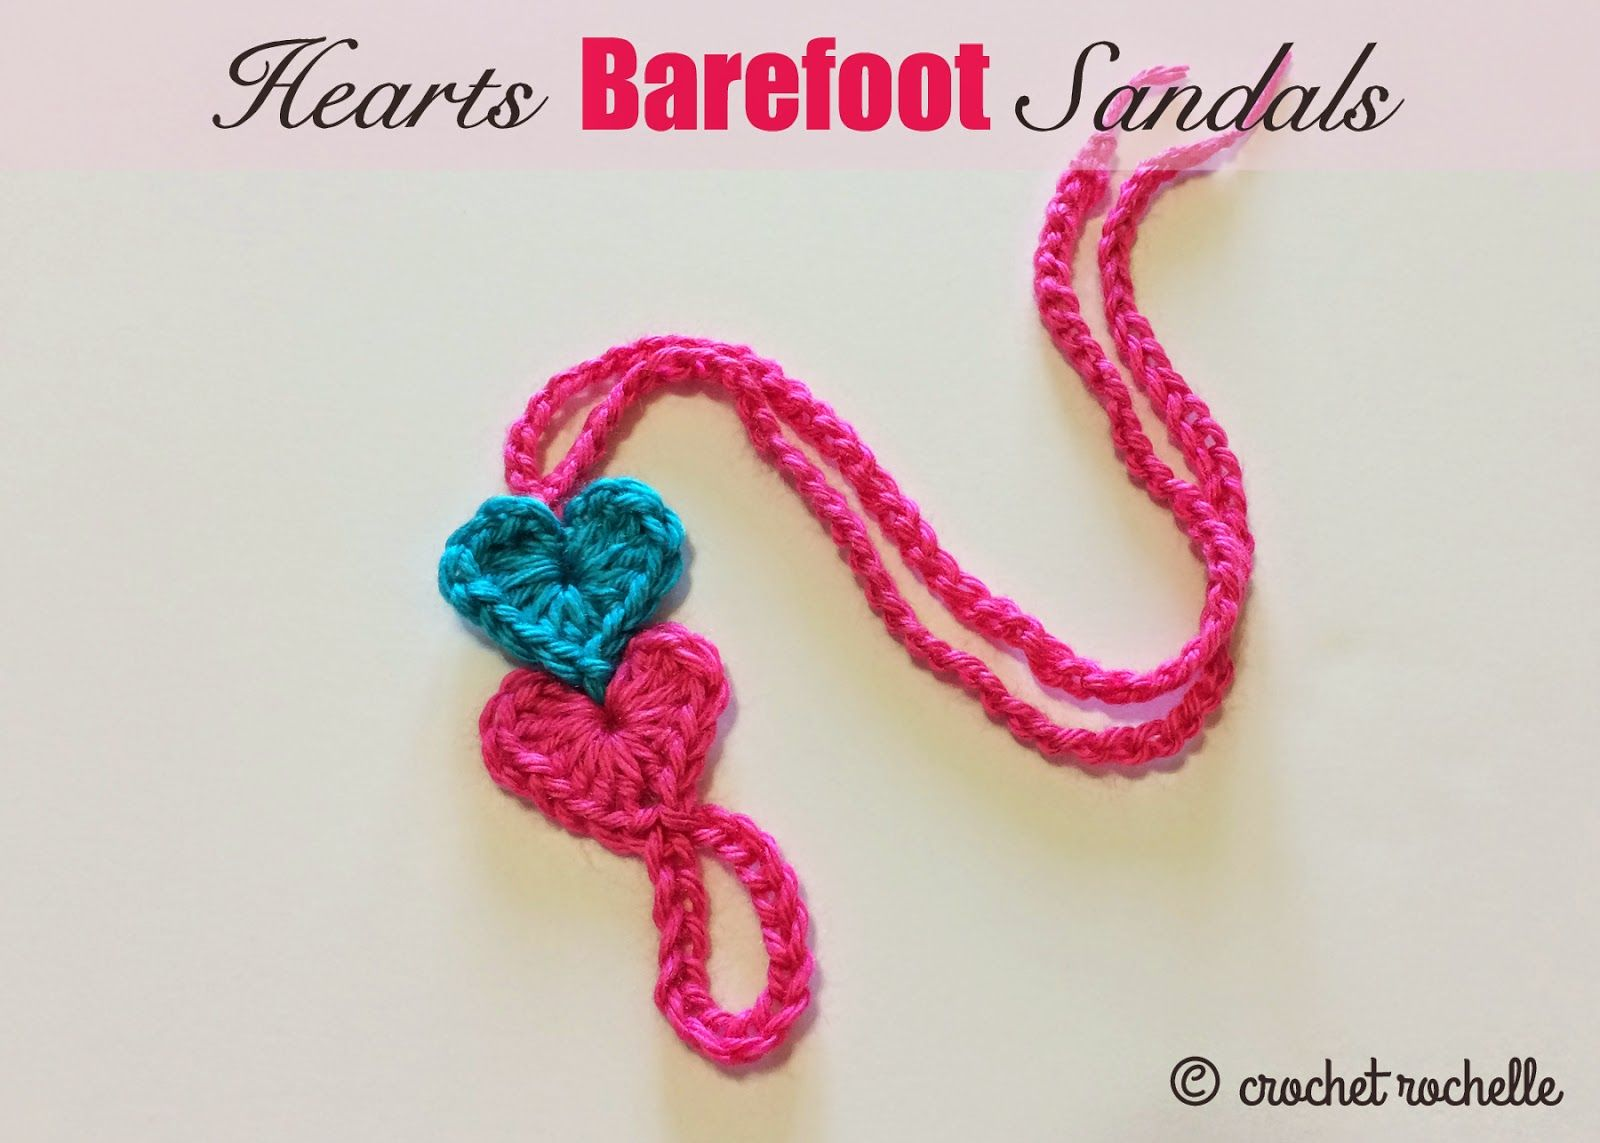 Crochet Rochelle: Hearts Barefoot Sandals | Crochet | Pinterest ...